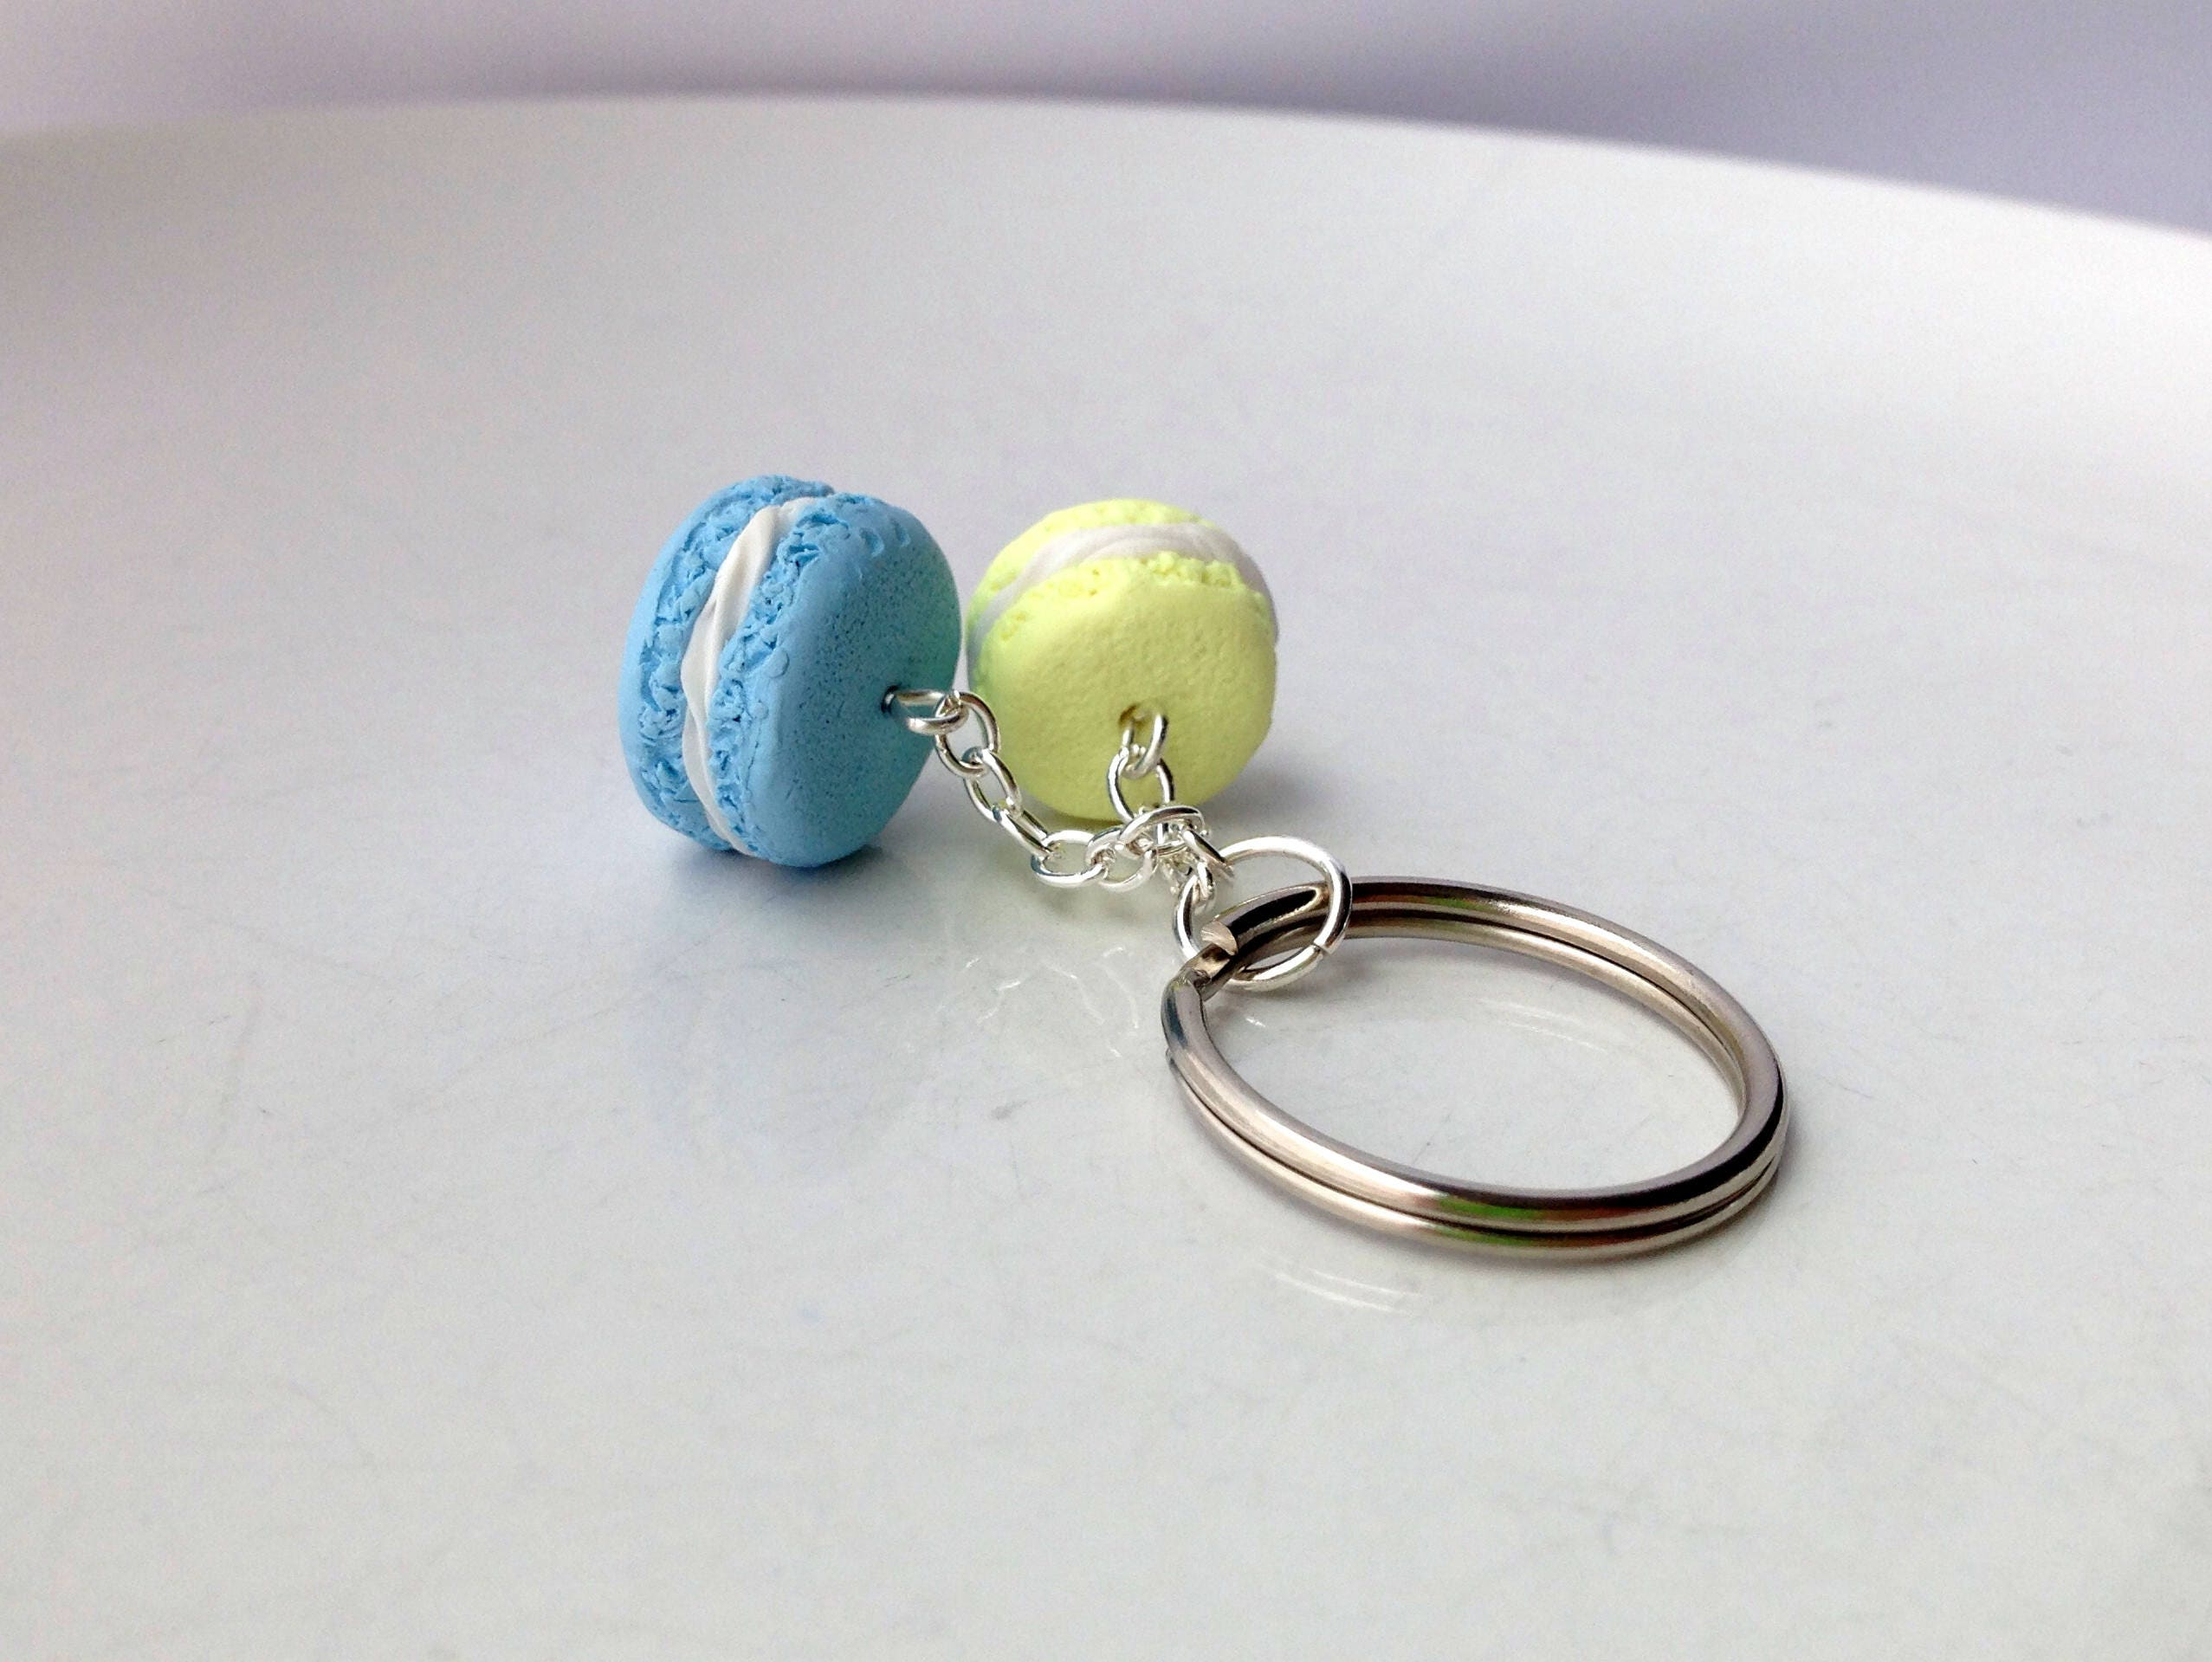 French Macaron Keyring Keychain Polymer Clay Miniature Food Jewellery jewelry Food Accessories Food Gift For Her